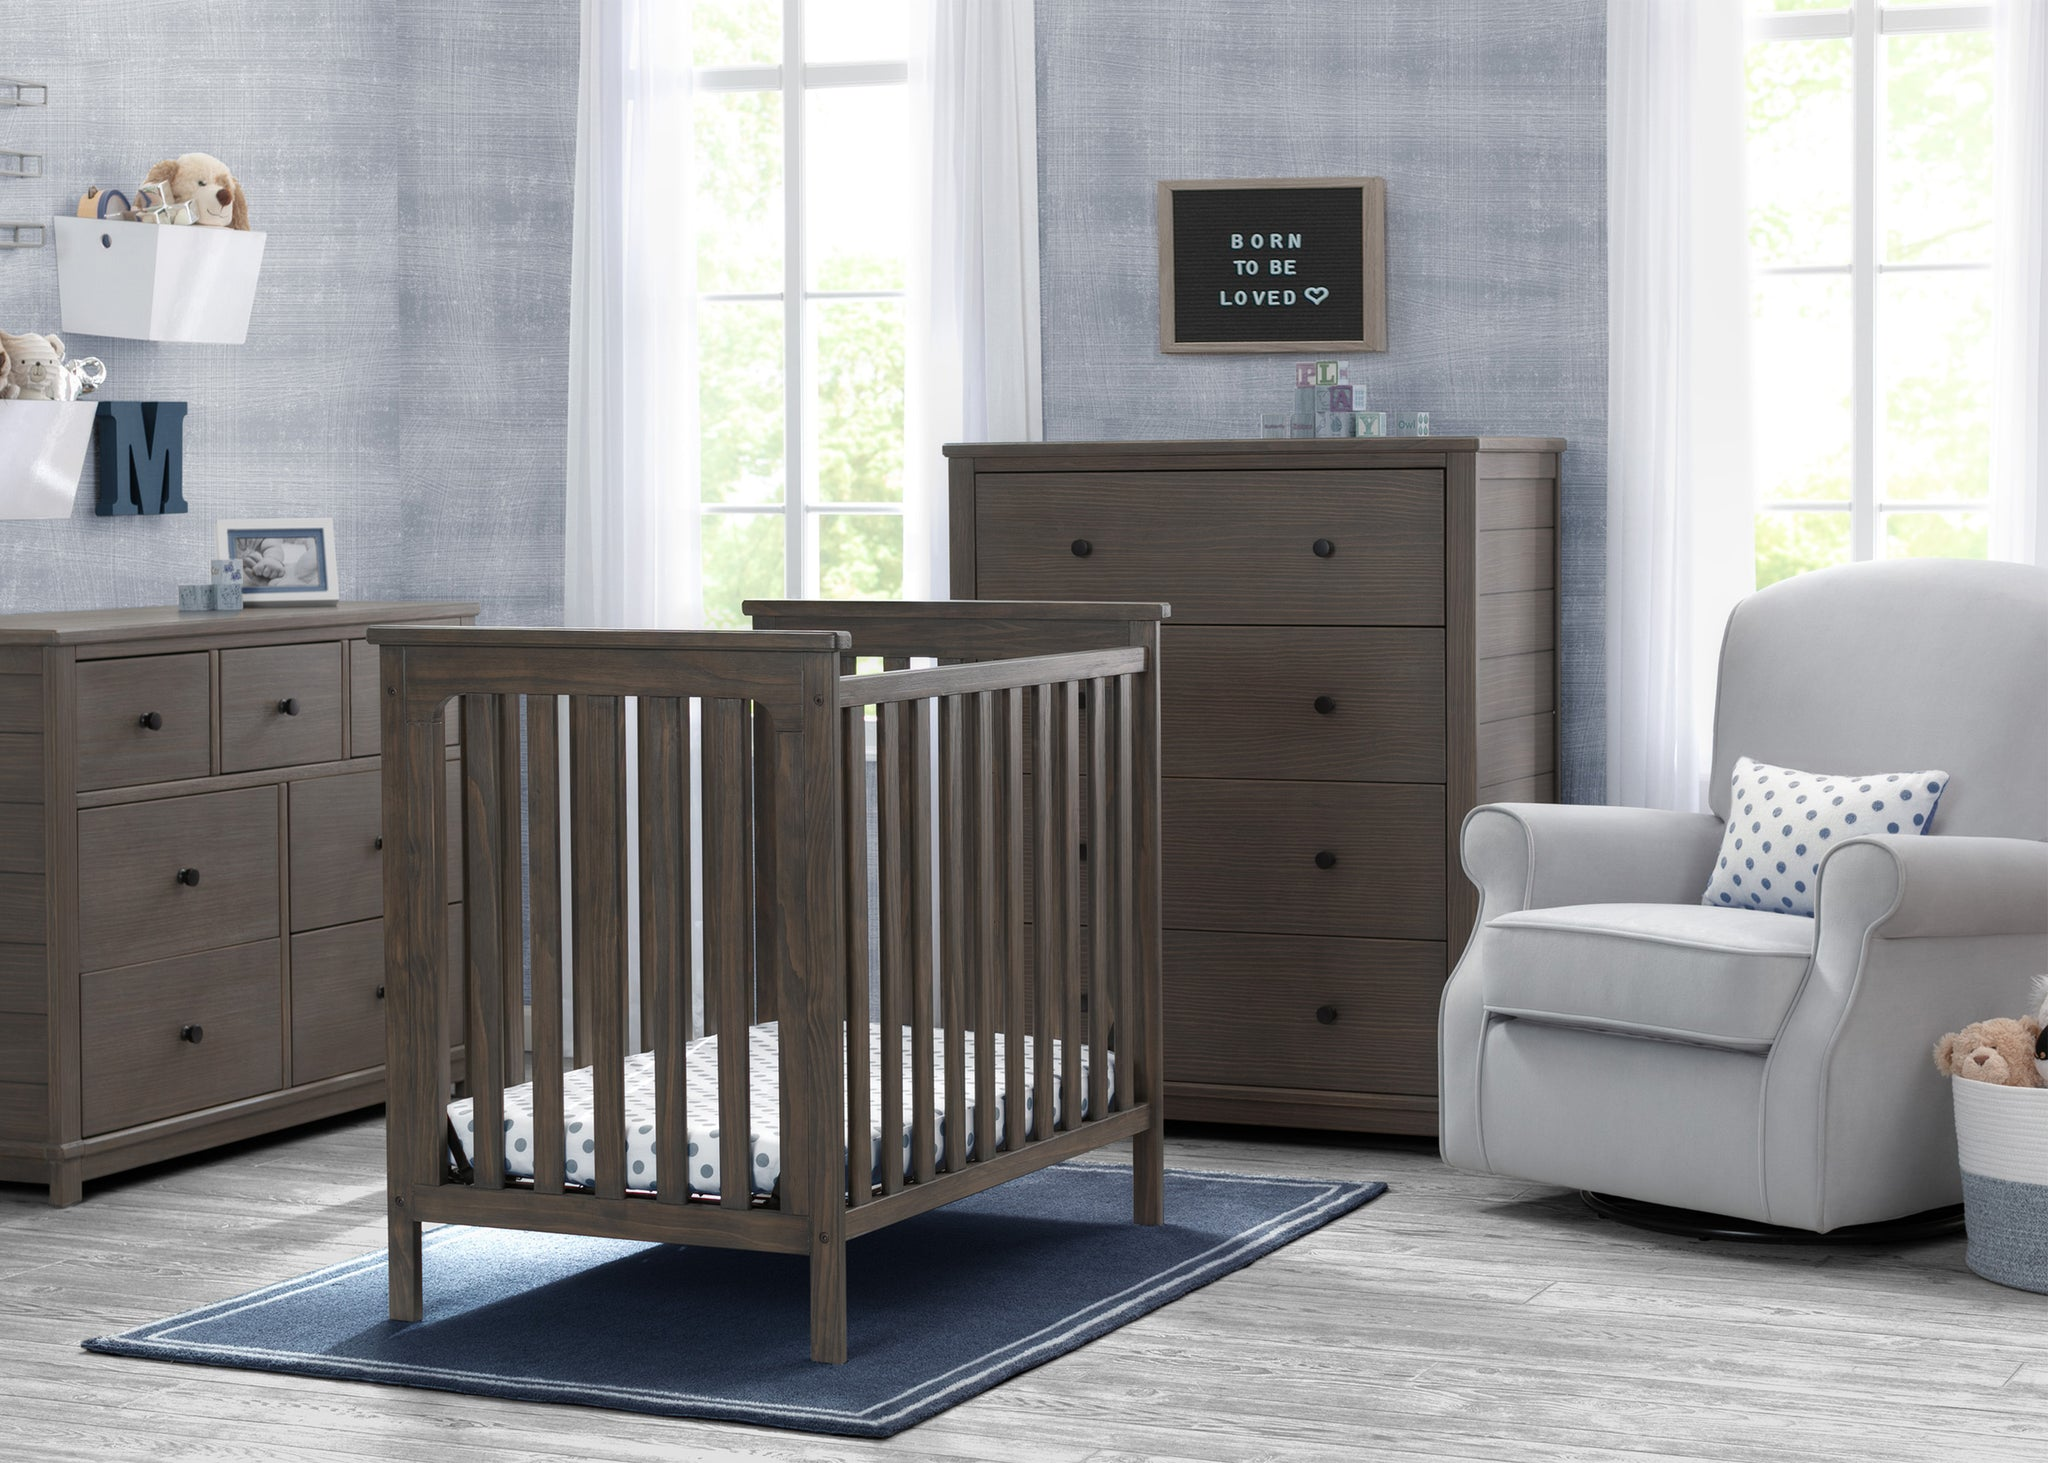 Delta Children Rustic Grey (084) Monterey Mini Crib with Mattress, Room View